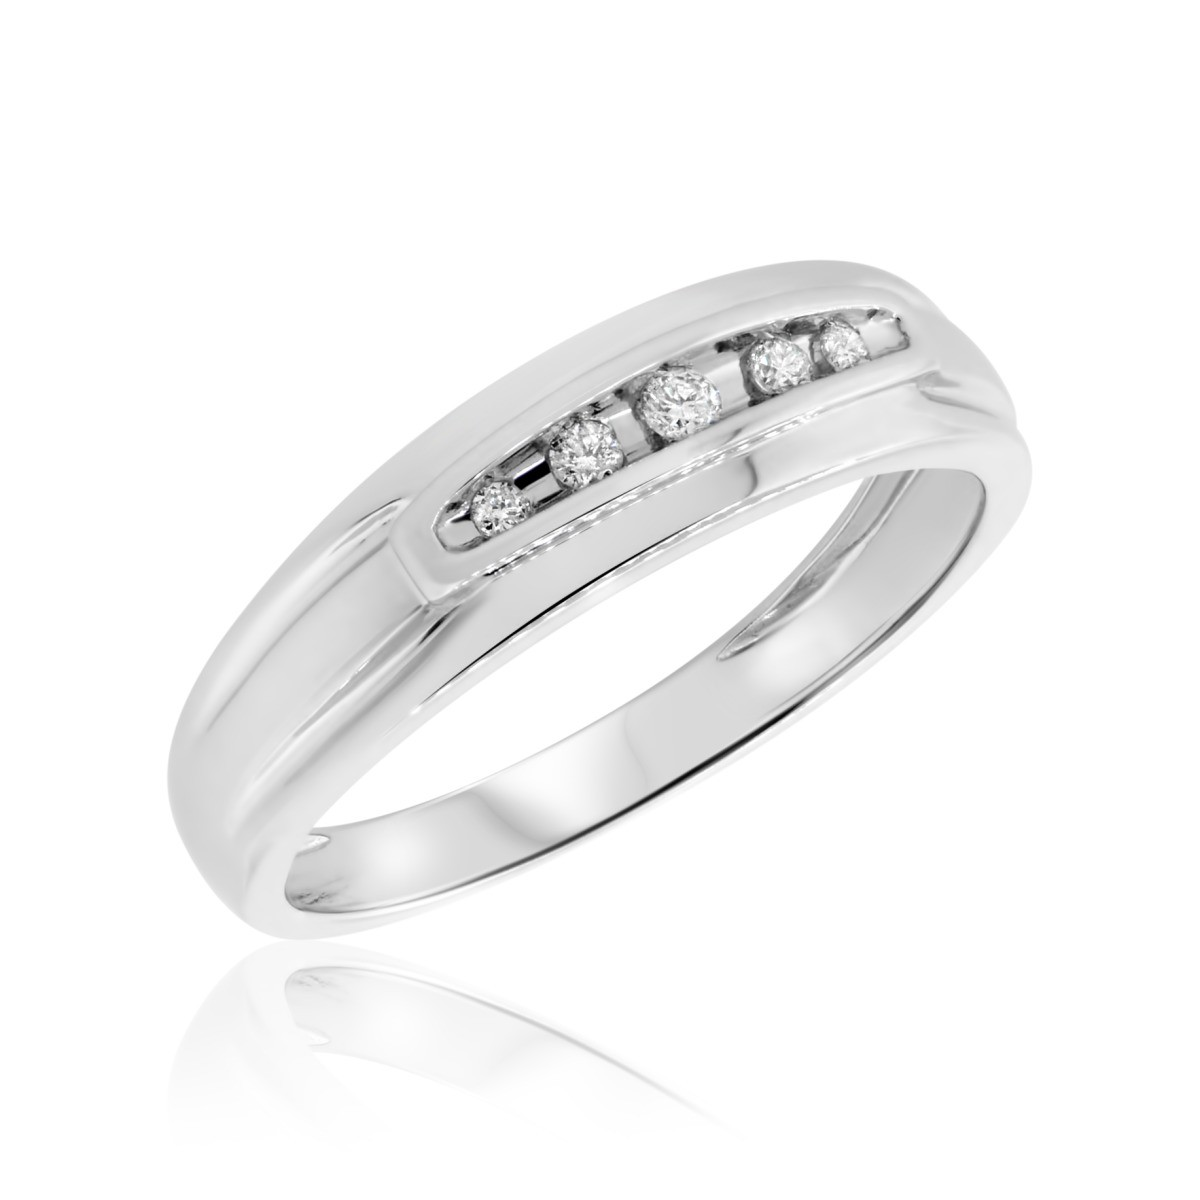 1/8 Carat T.W. Diamond Mens Wedding Band  14K White Gold